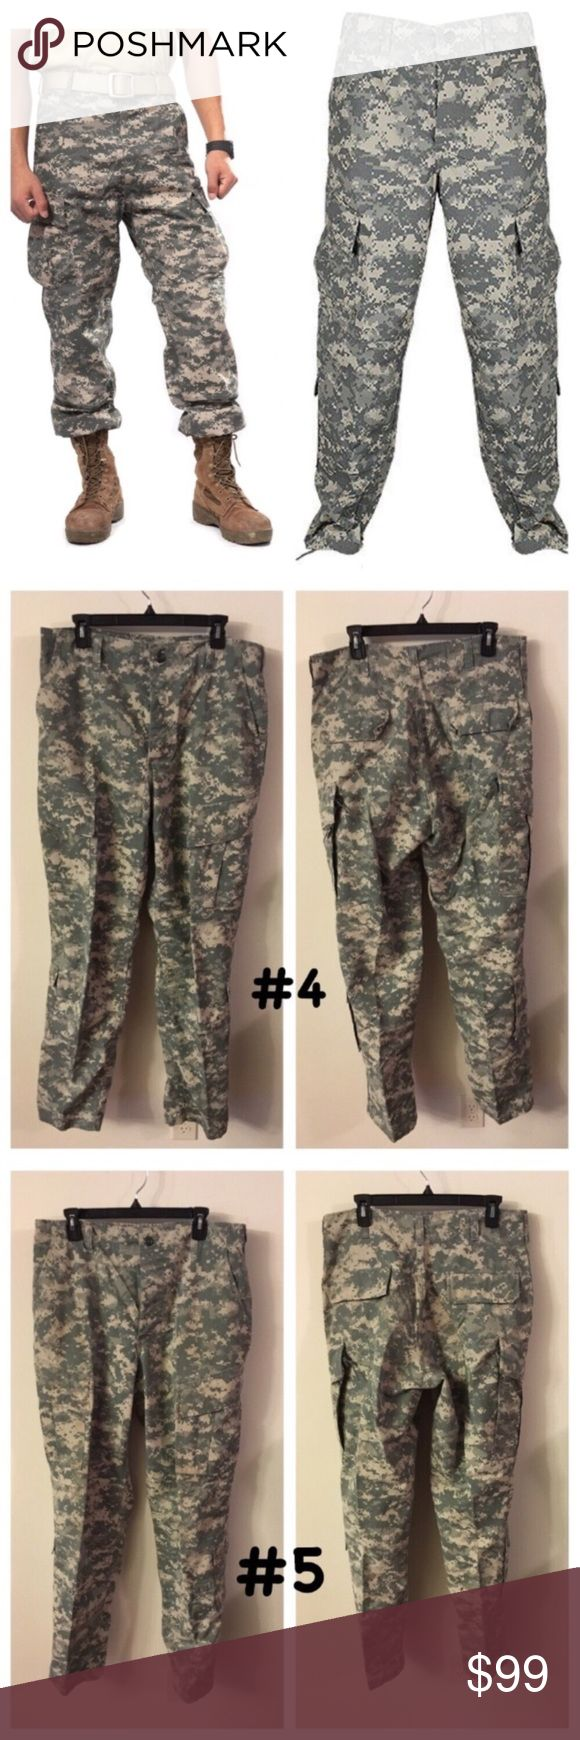 "Medium-Long ACU Army Combat Uniform Pants: 1 pair 📦Same day shipping (as long as P.O. is open for business). ❤ Measurements are approximate. Descriptions are accurate to the best of my knowledge.  Price is for one pair! All are size Medium Long Army ACU (Army Combat Uniform) Trousers. Each photo is front/back of each separate pair. These ACU pants are gender neutral. Fits inseams 32.5""-35.5"" & waist 31""-35"". Normal wear from use: free from holes/stains. Smoke/pet free. Some of the labels…"